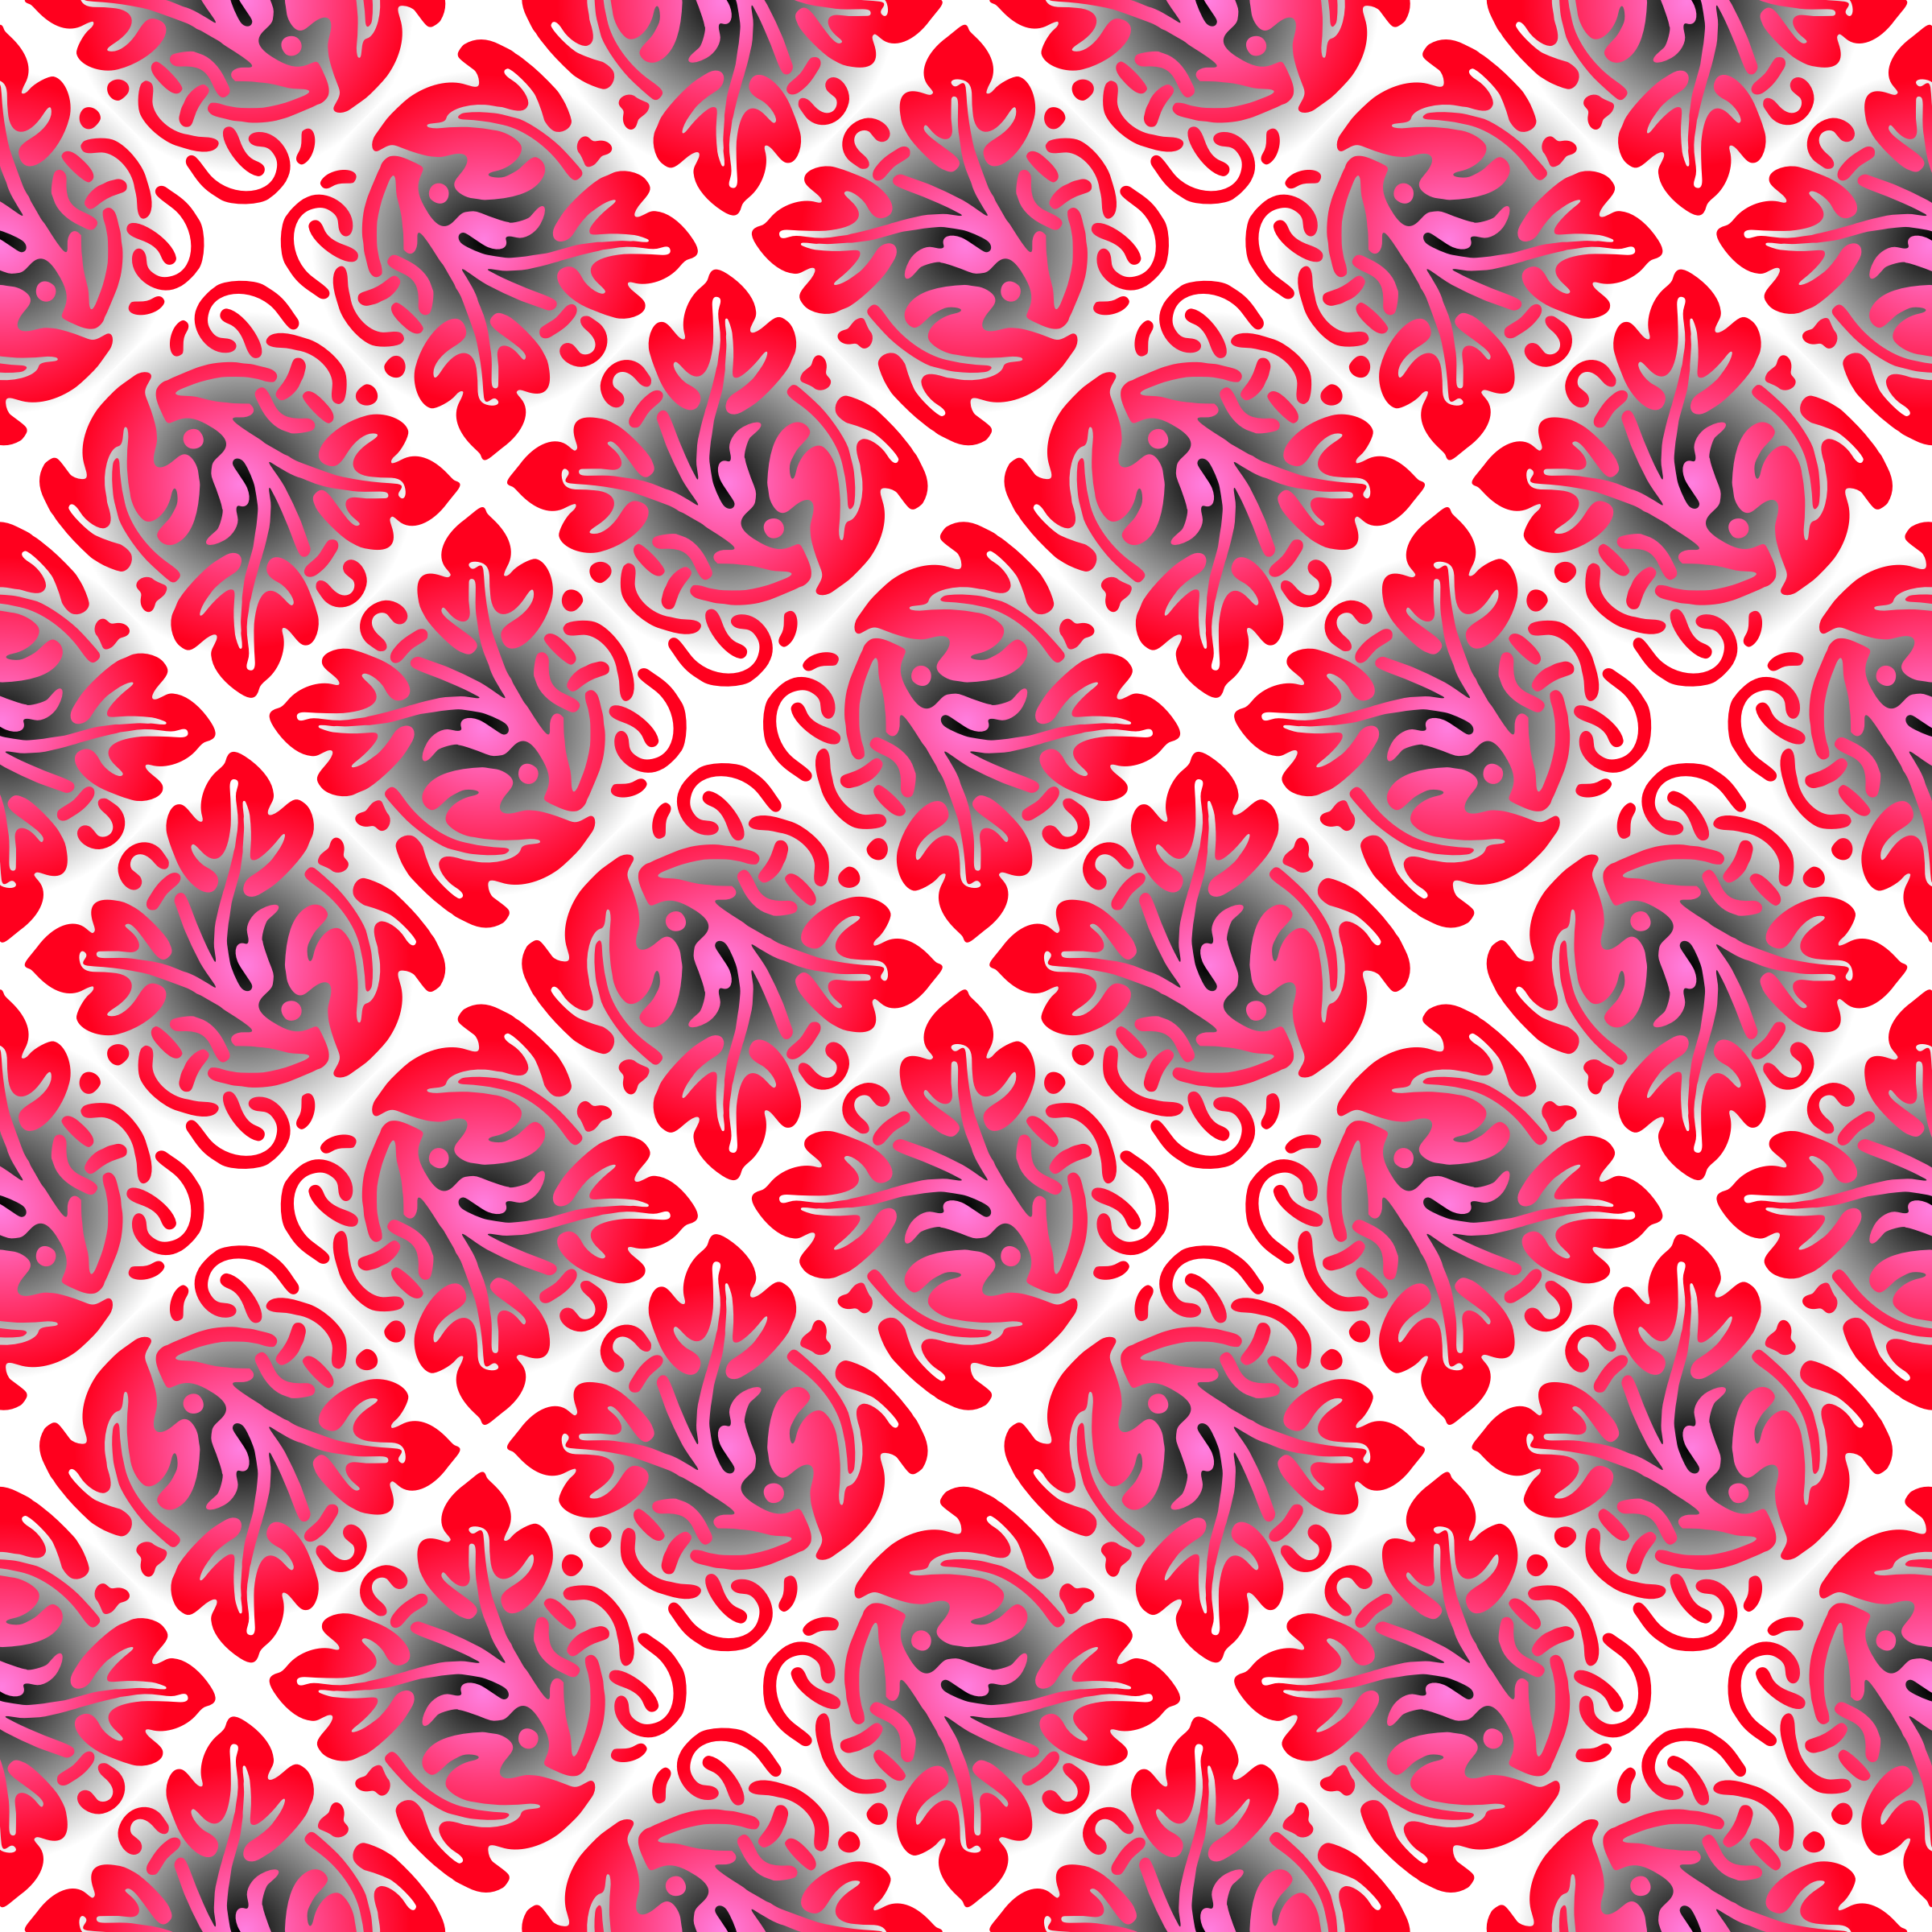 Background pattern 172 (colour 6) by Firkin